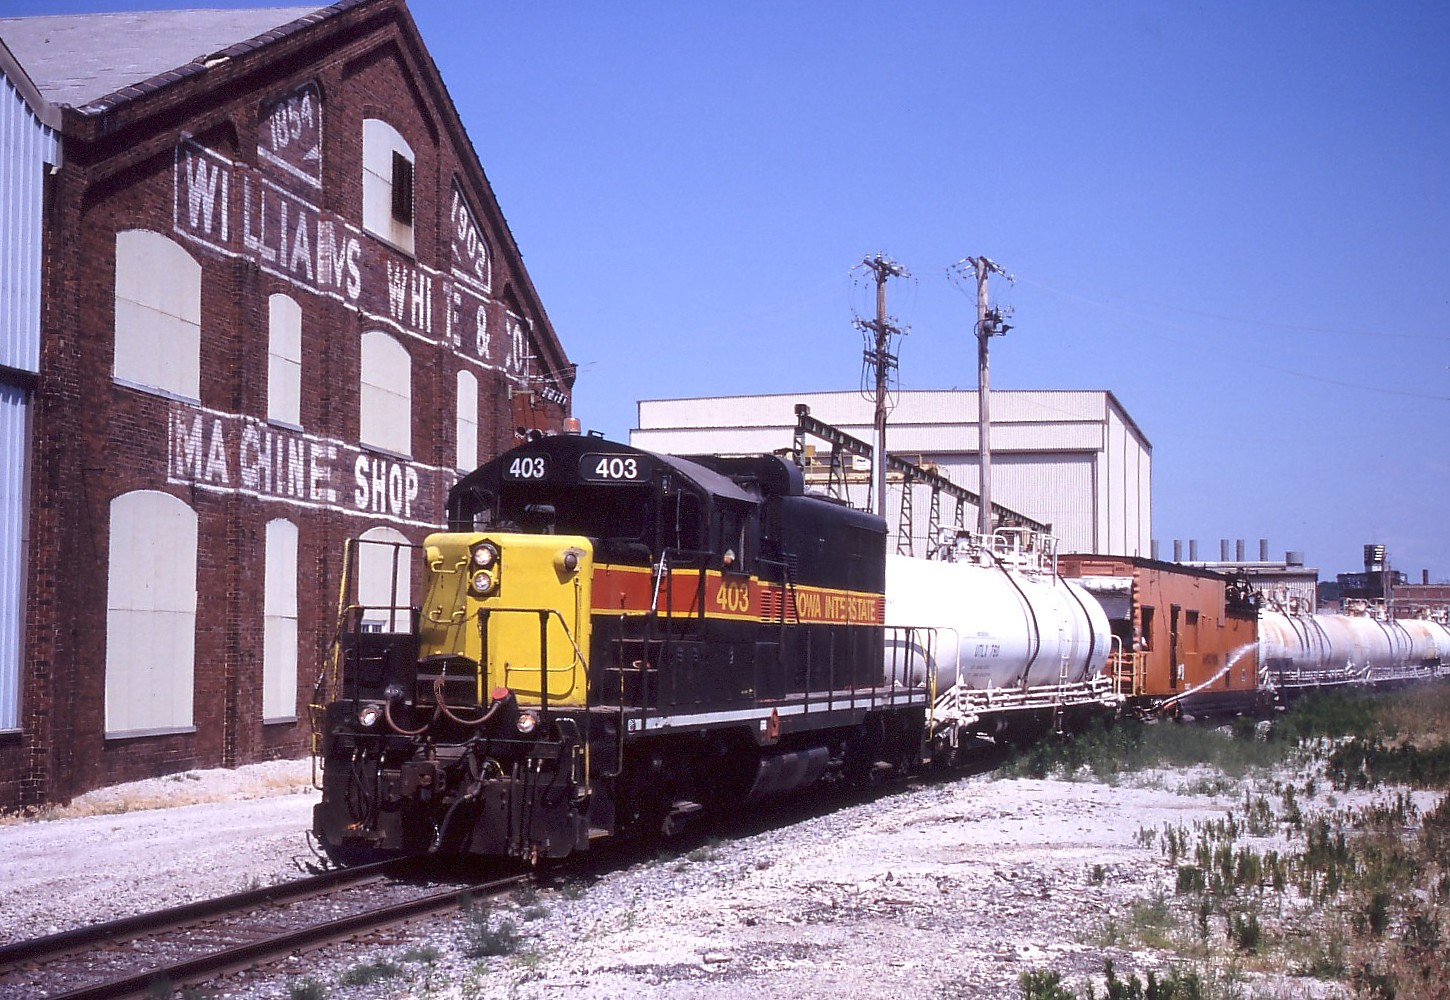 IAIS 403 is seen again passing Williams White Inc in Moline, IL on June 22, 2005.